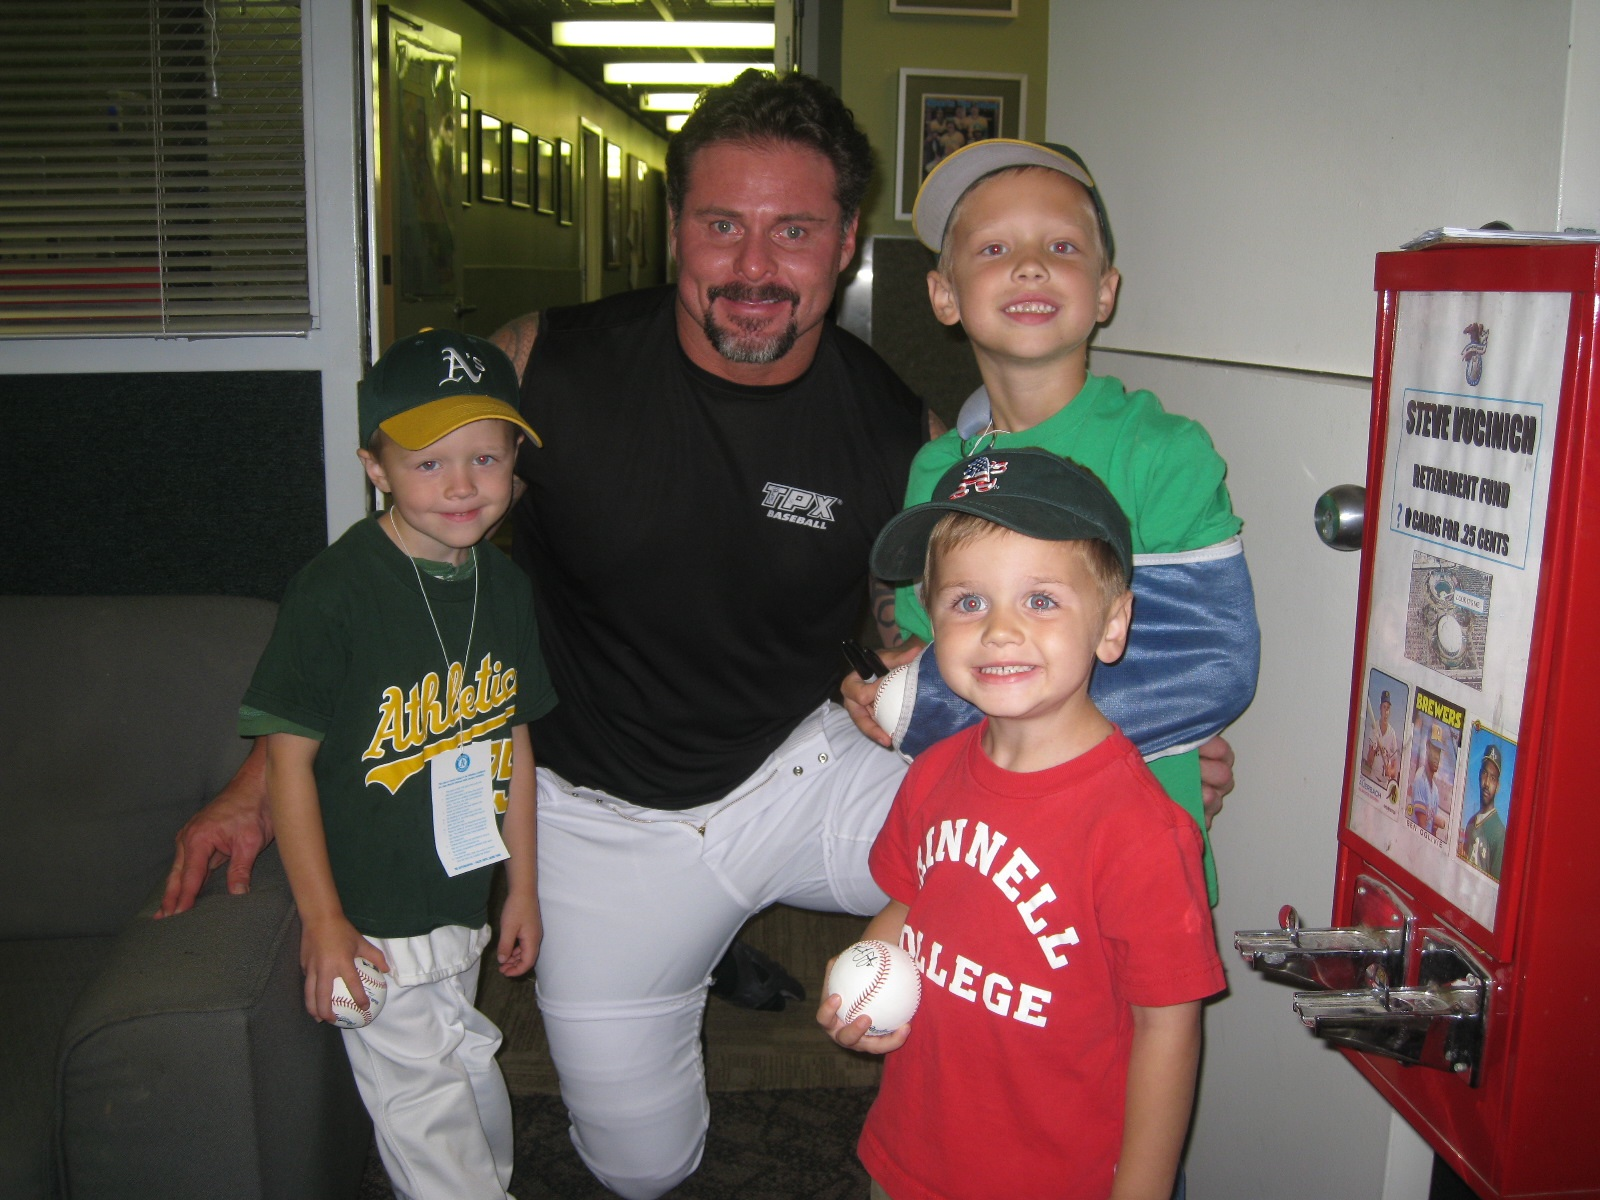 Giambi kneels between the three boys for a snapshot